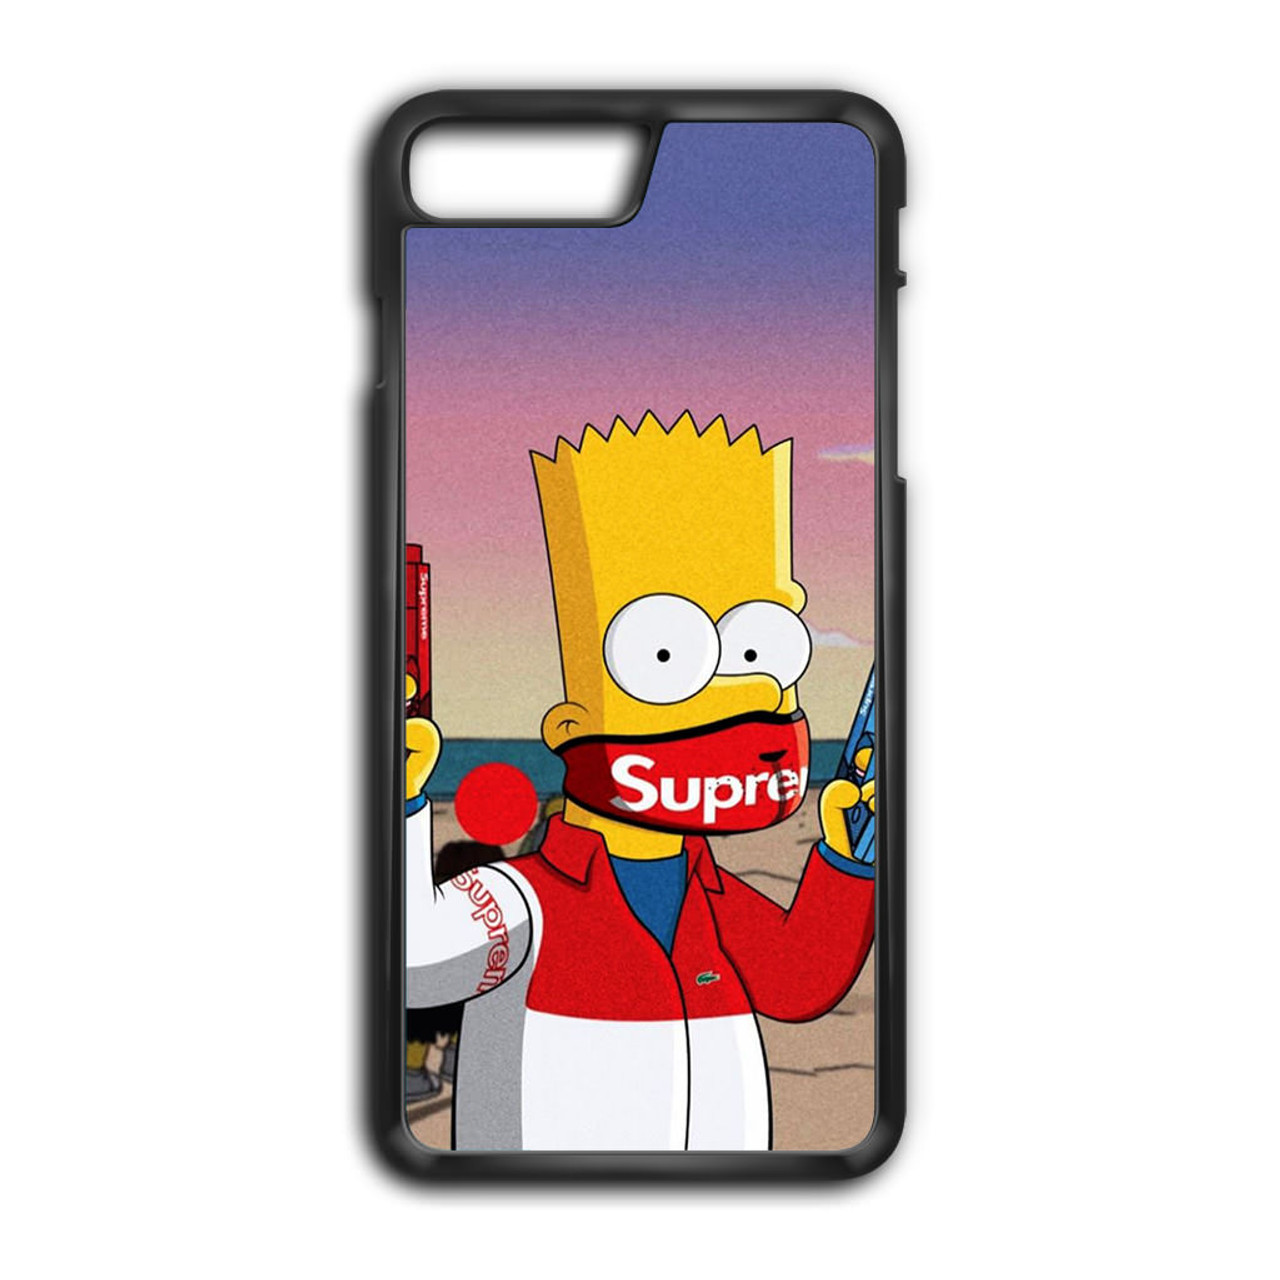 8 plus phone case iphone